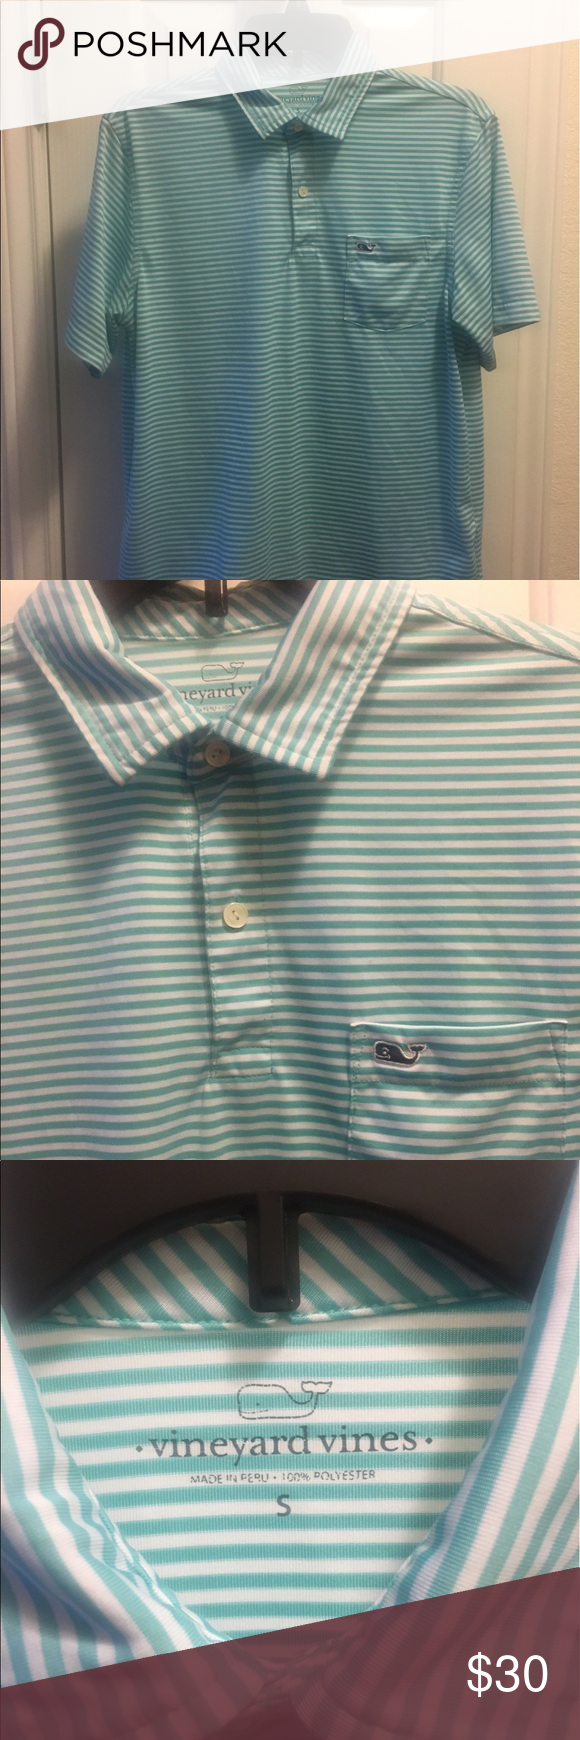 Vineyard vines polo Size small. Great polo Vineyard Vines Tops Tees - Short Sleeve